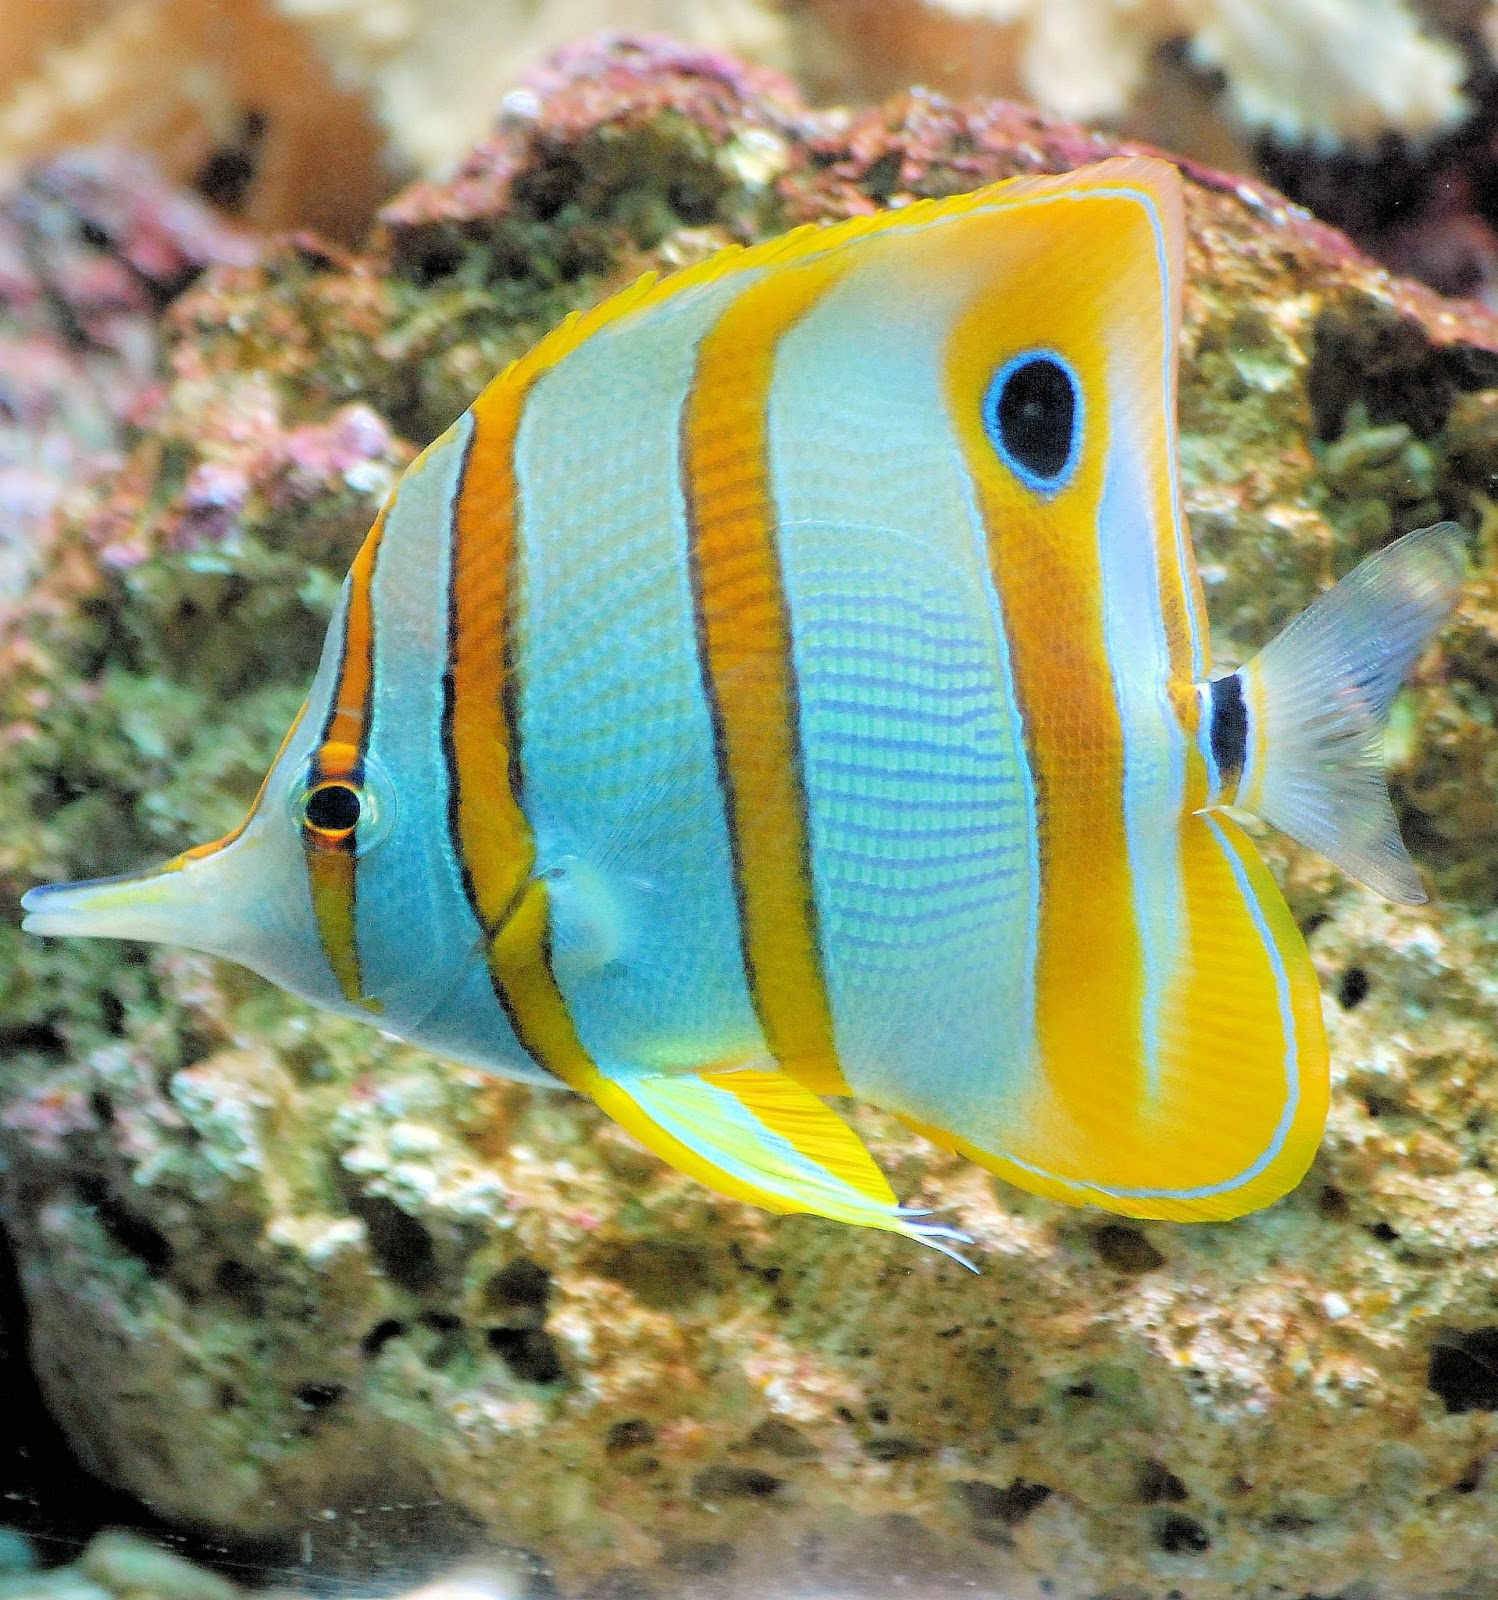 A photo of a butterfly fish.